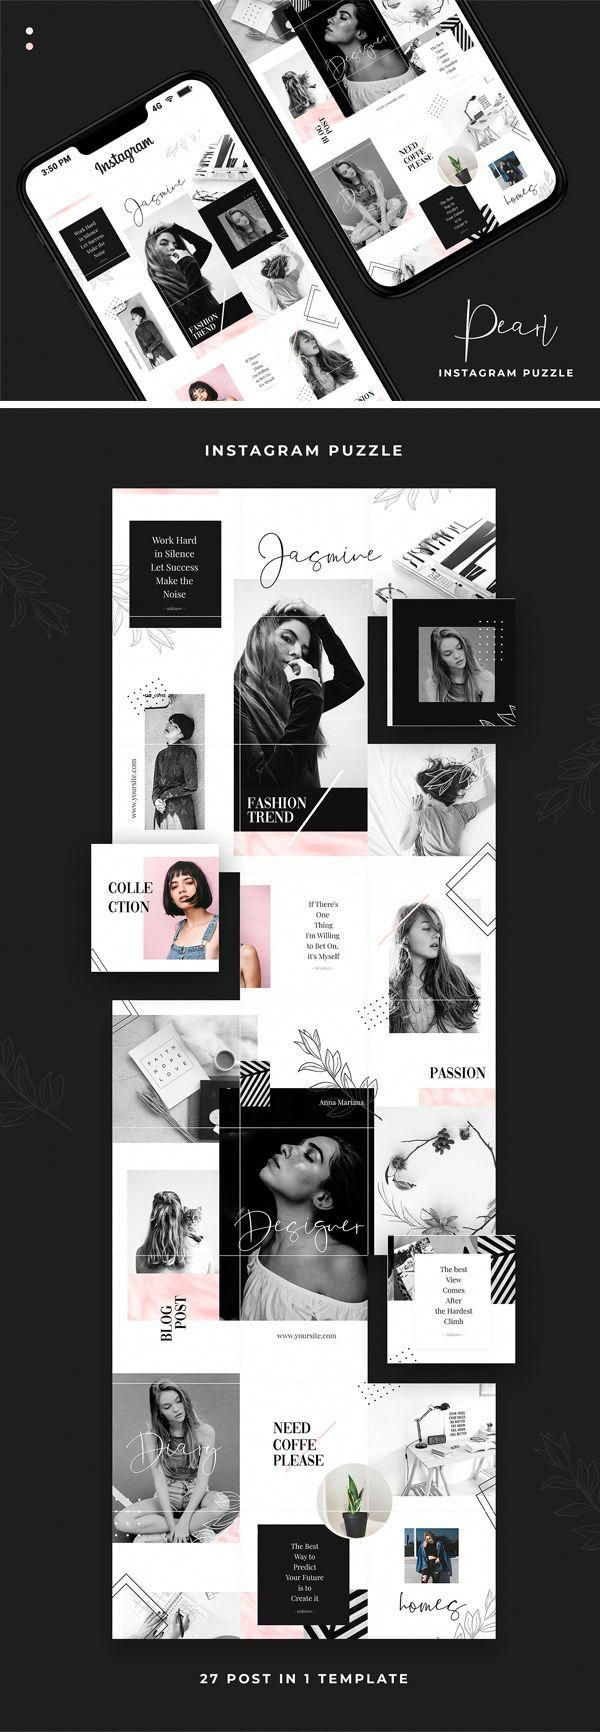 Pearl Instagram Puzzle Template  inspired by noir theme with modern feel and touch will make your profile standing out